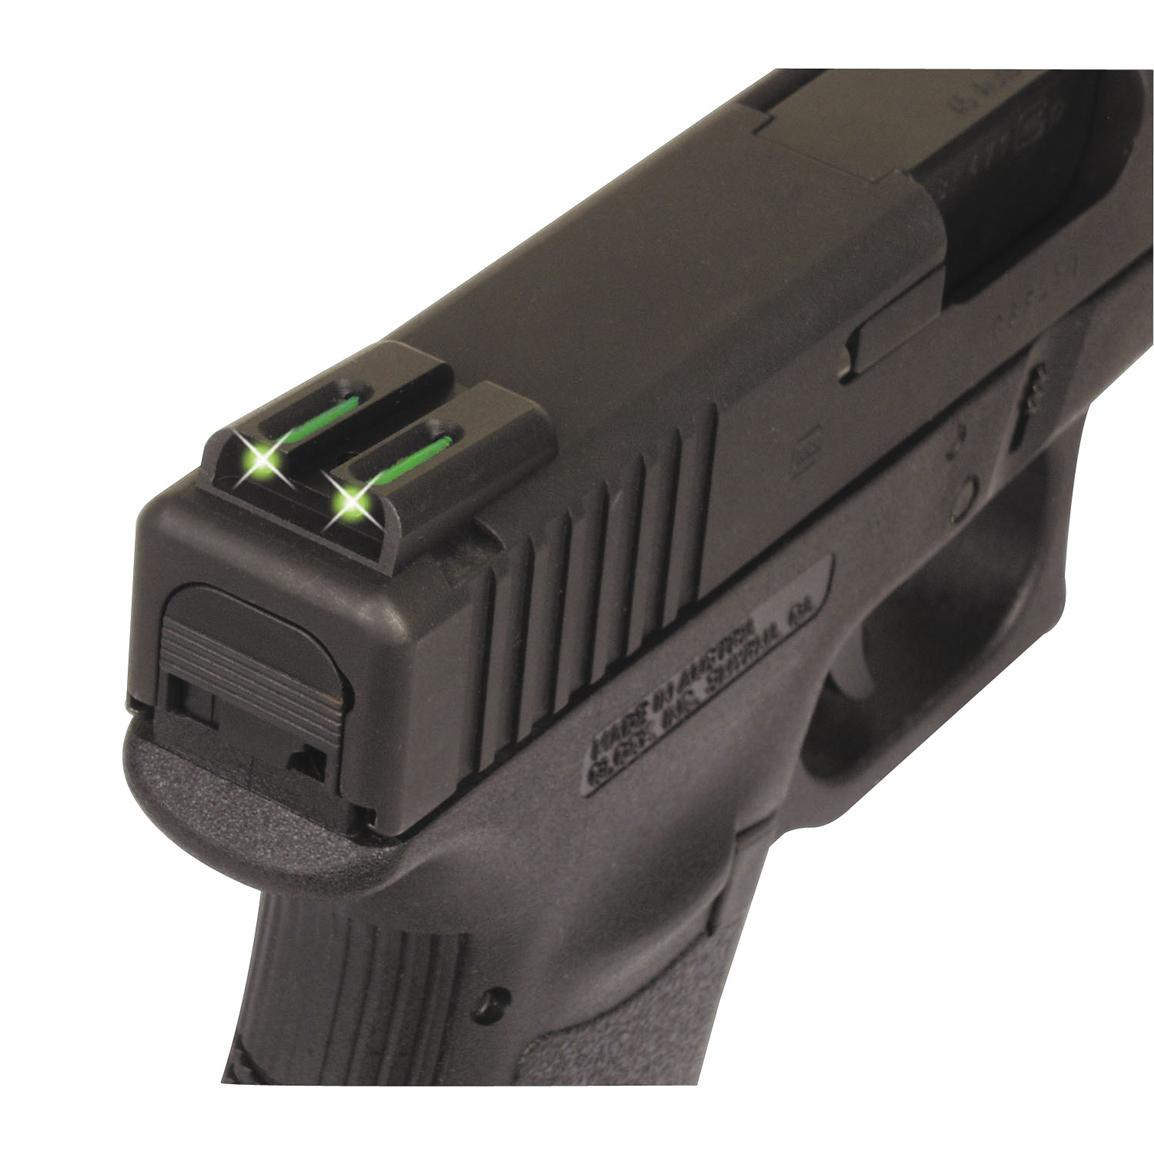 Truglo Tritium / Fiber Optic Rite Front Sight, Front Green, Rear Yellow Sig - #8 Front / #8 Rear